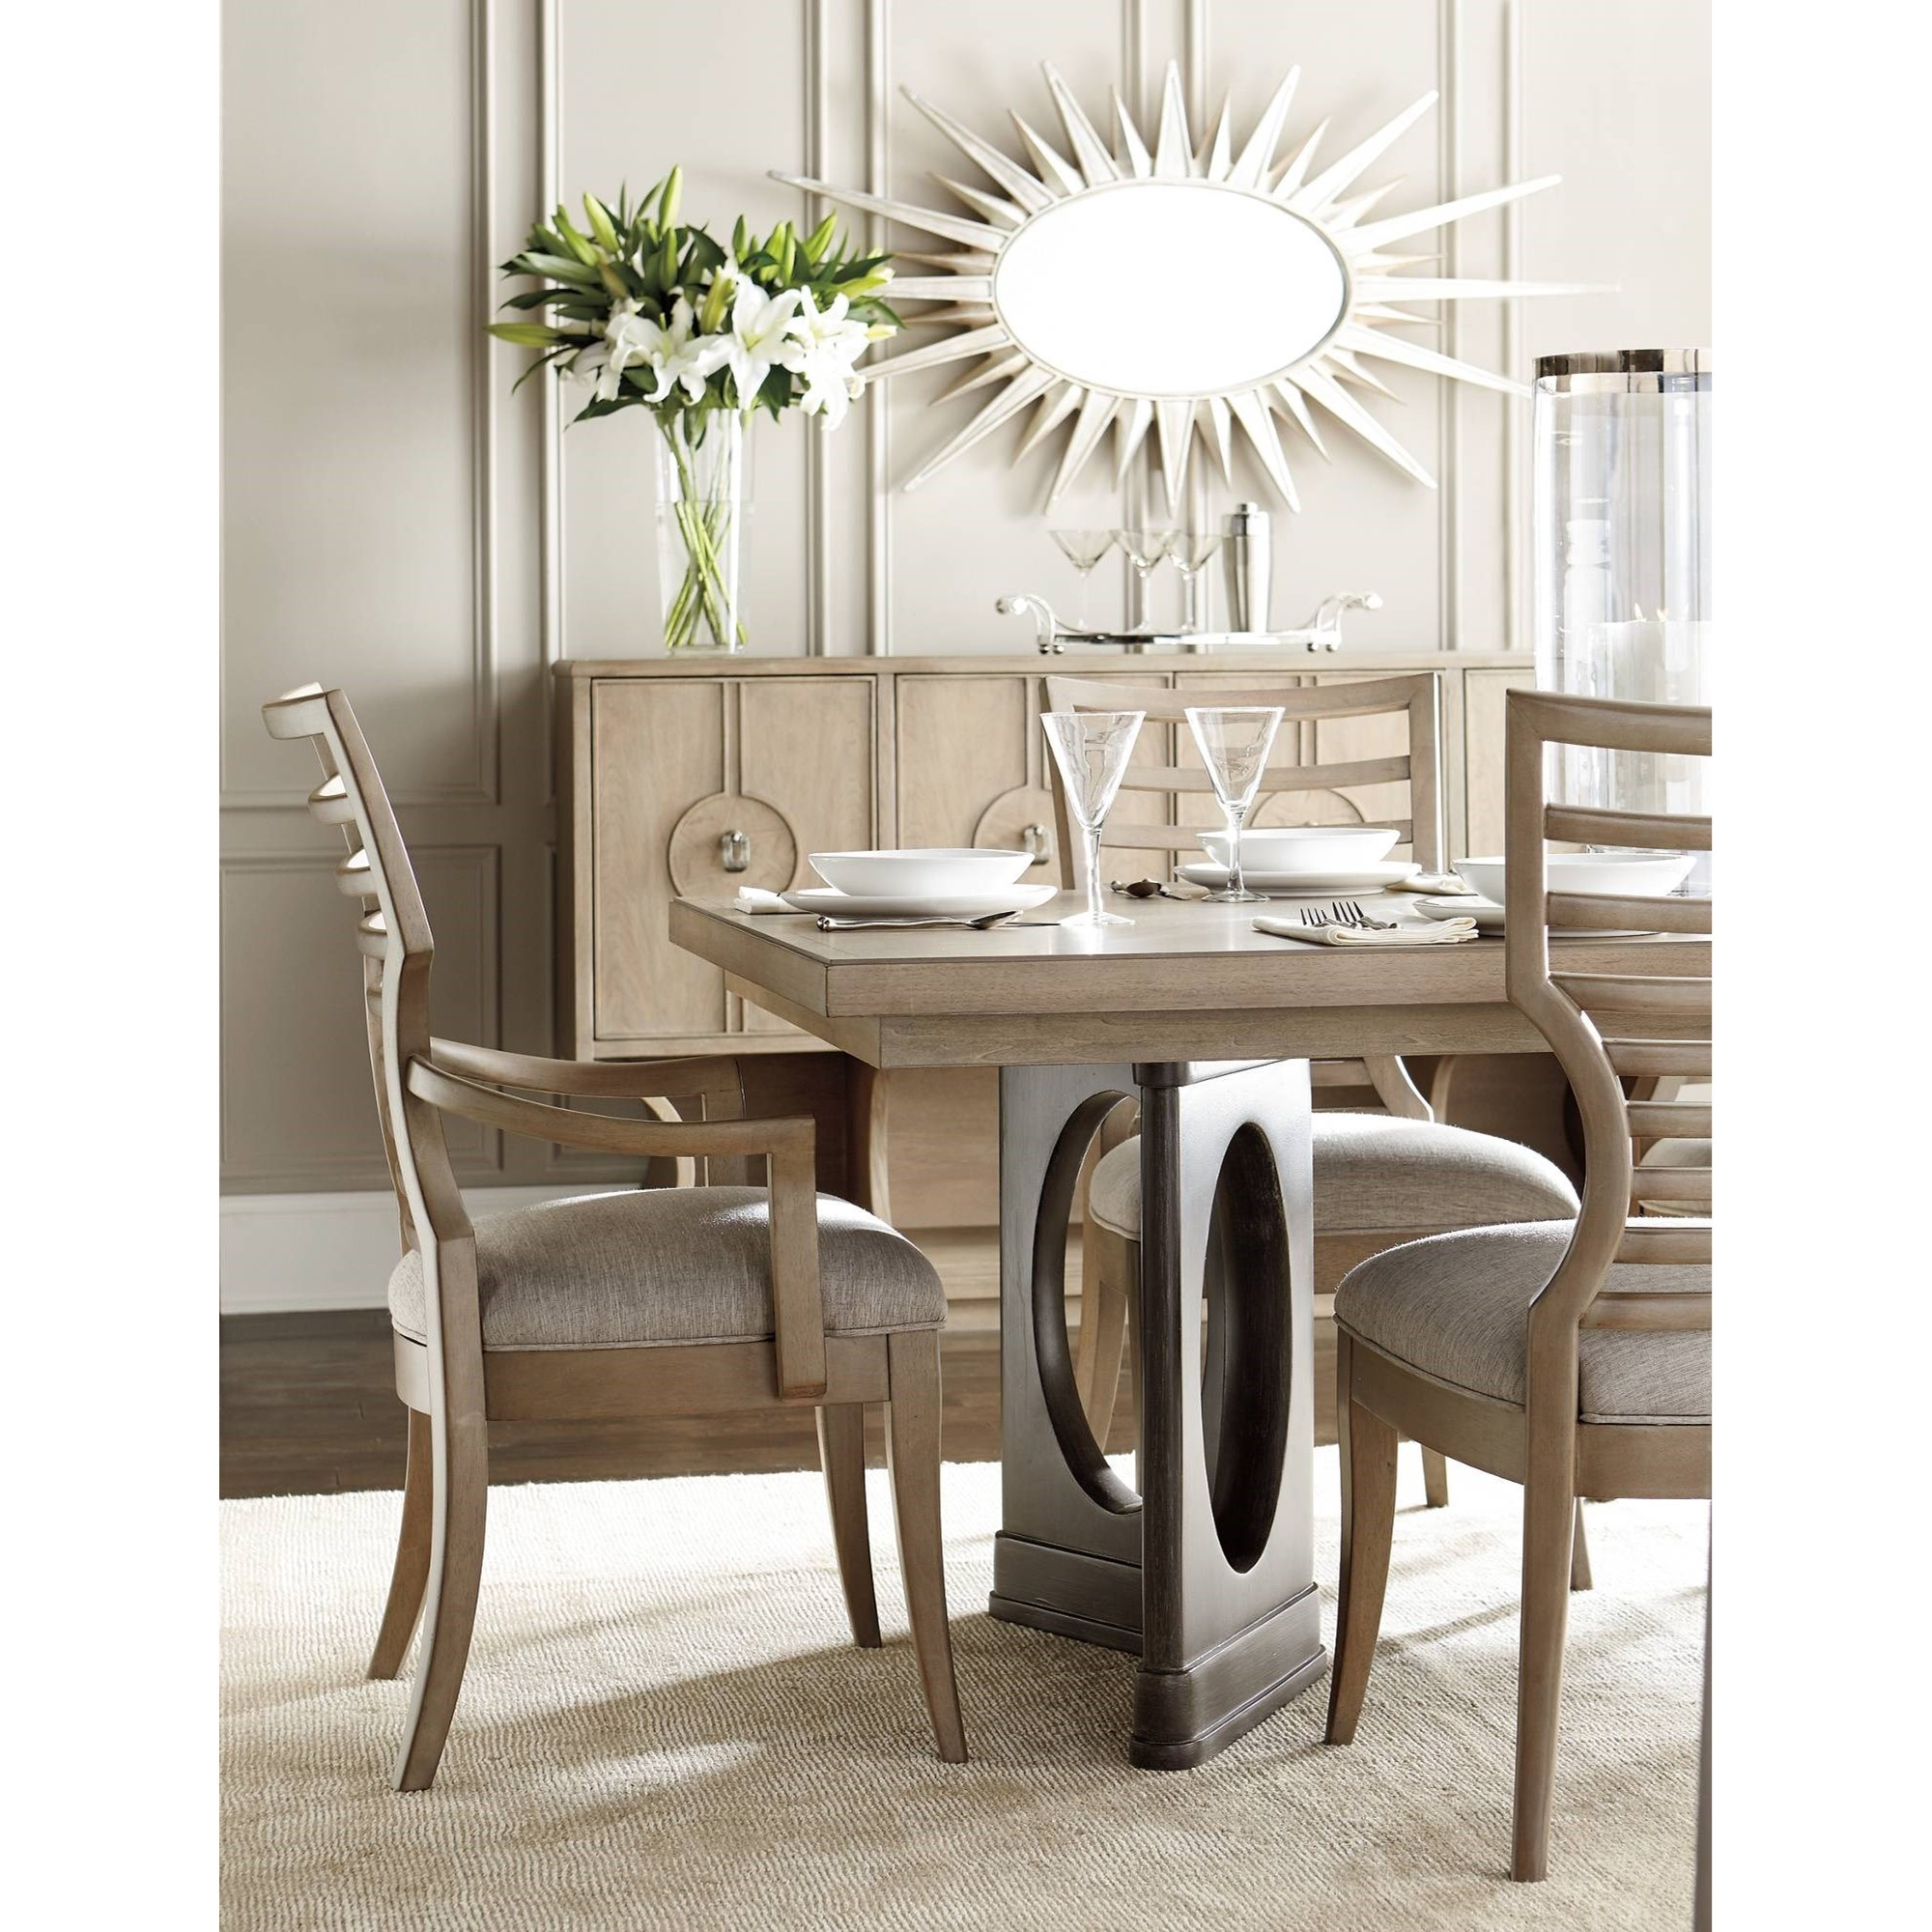 Stanley furniture virage formal dining room group dunk for Formal dining room furniture